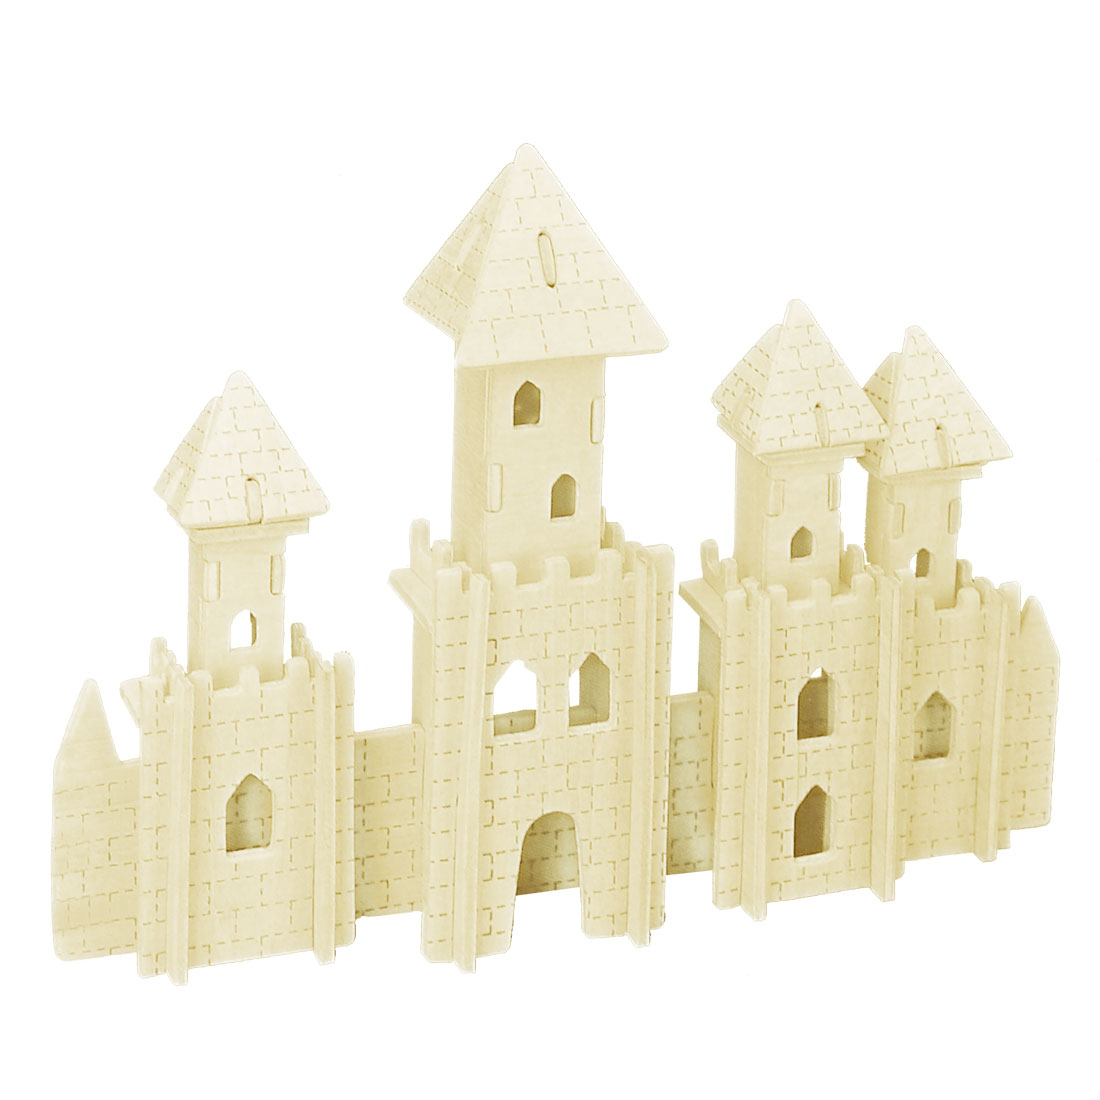 Child Wooden Castle Model 3D Woodcraft Construction Kit Intelligence Puzzle Toy